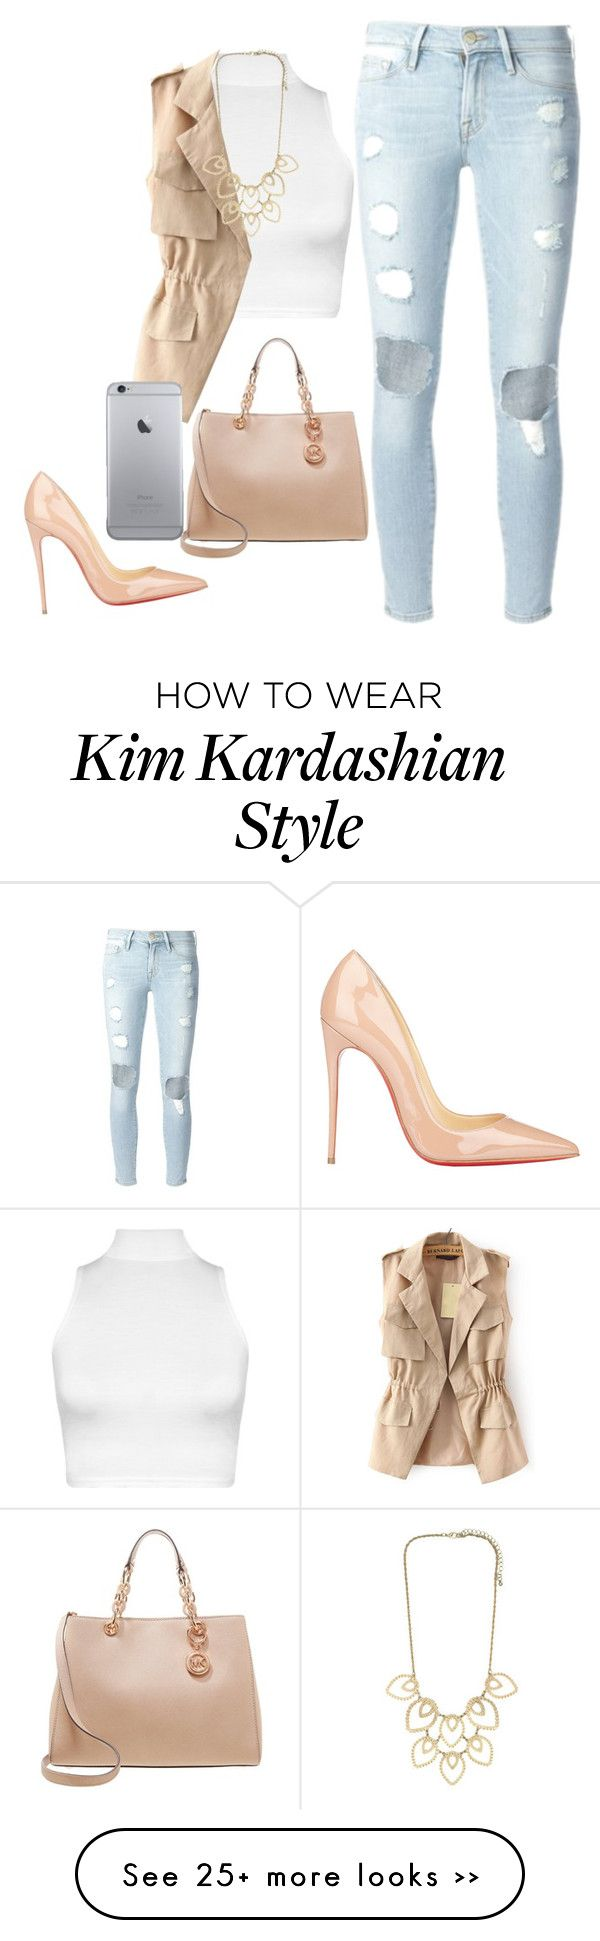 """Kim Kardashian look"" by gabymailk on Polyvore"